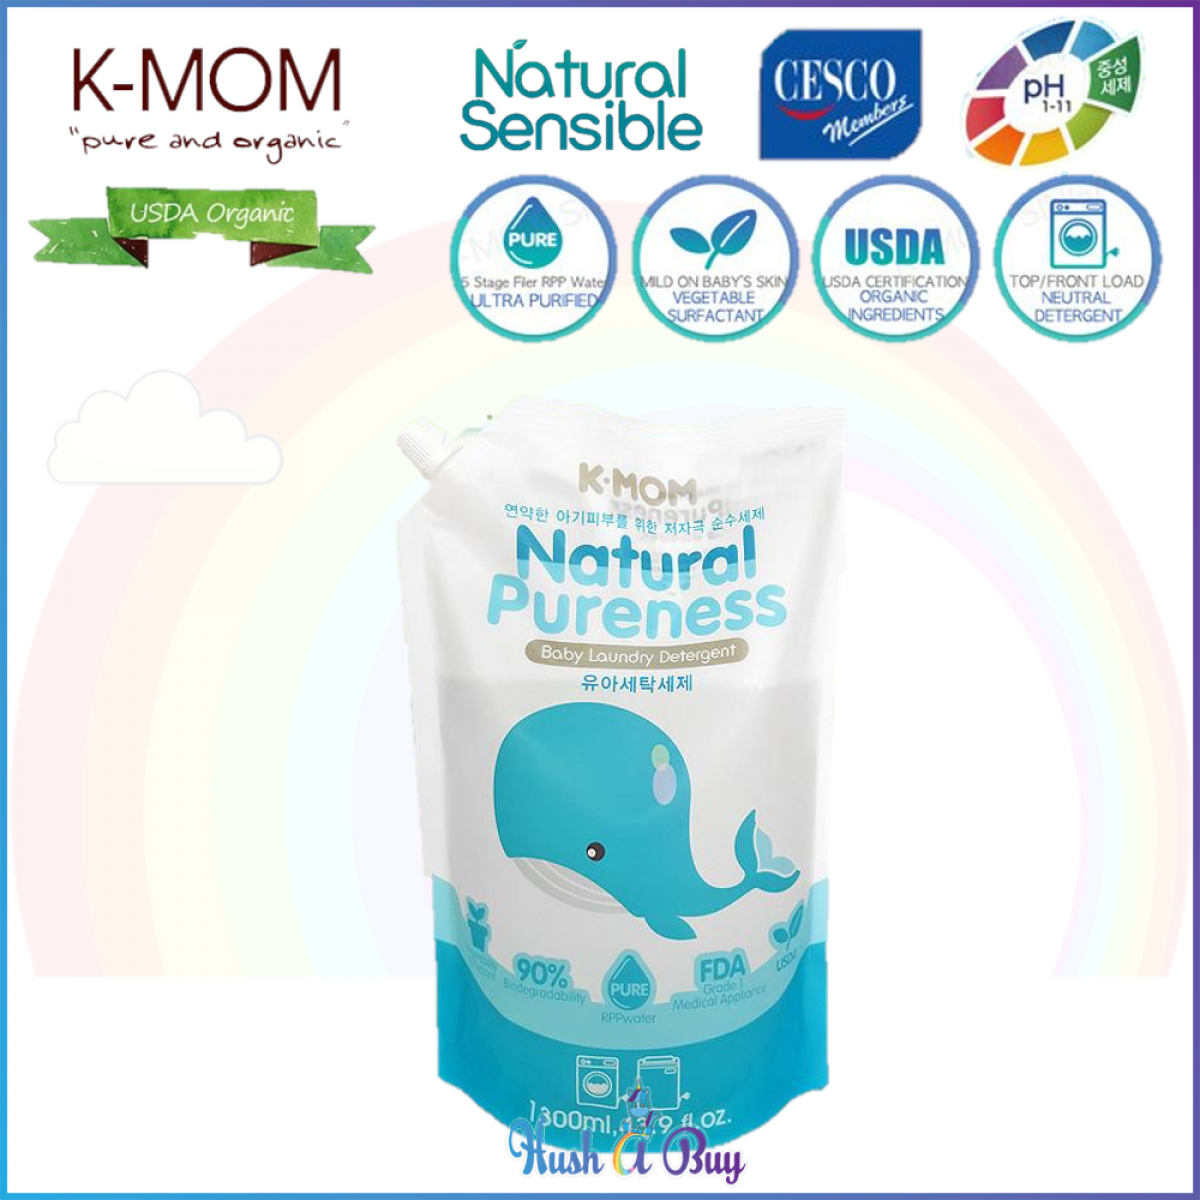 K-MOM USDA Organic Laundry & Floor Detergent Pack 1300ml - Refill